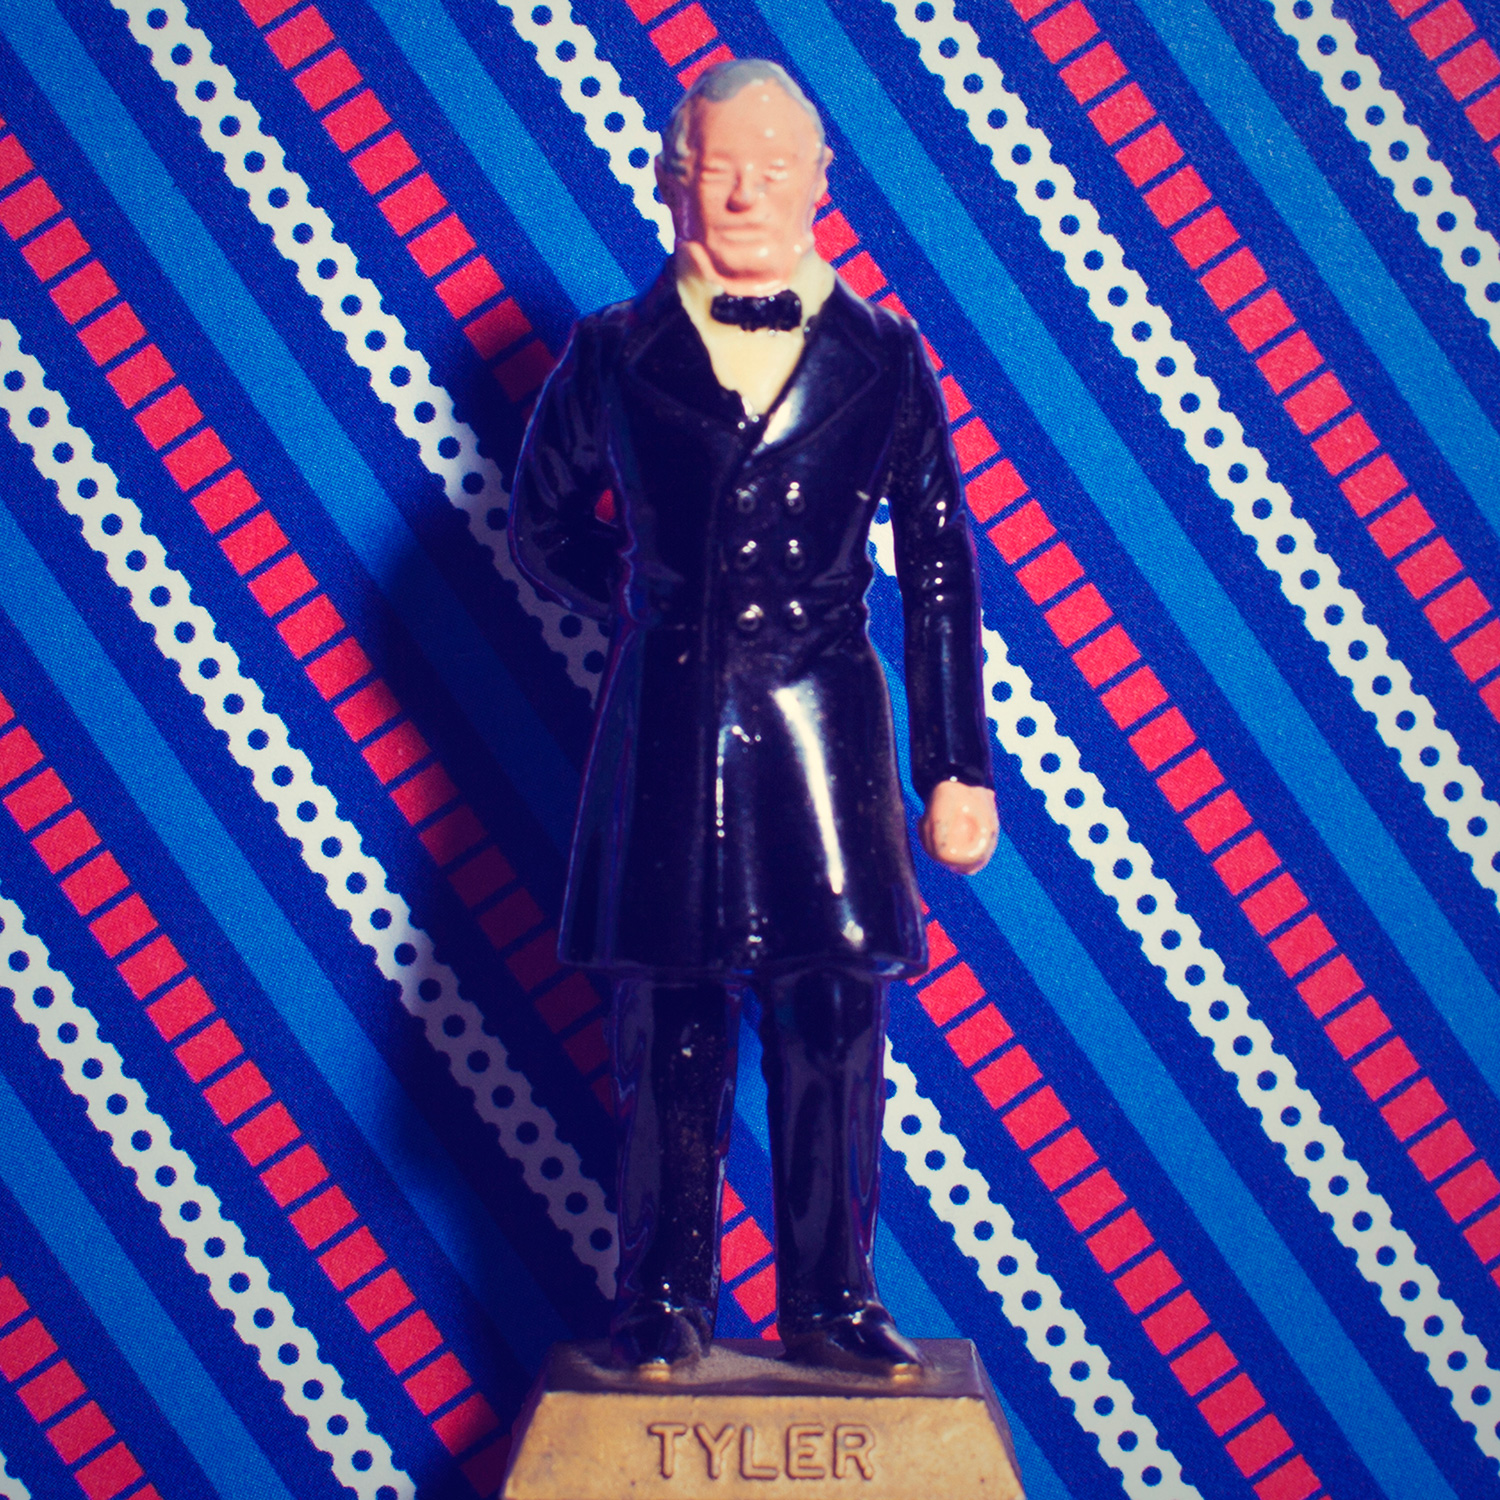 John Tyler: Ghosts and the vice presidency